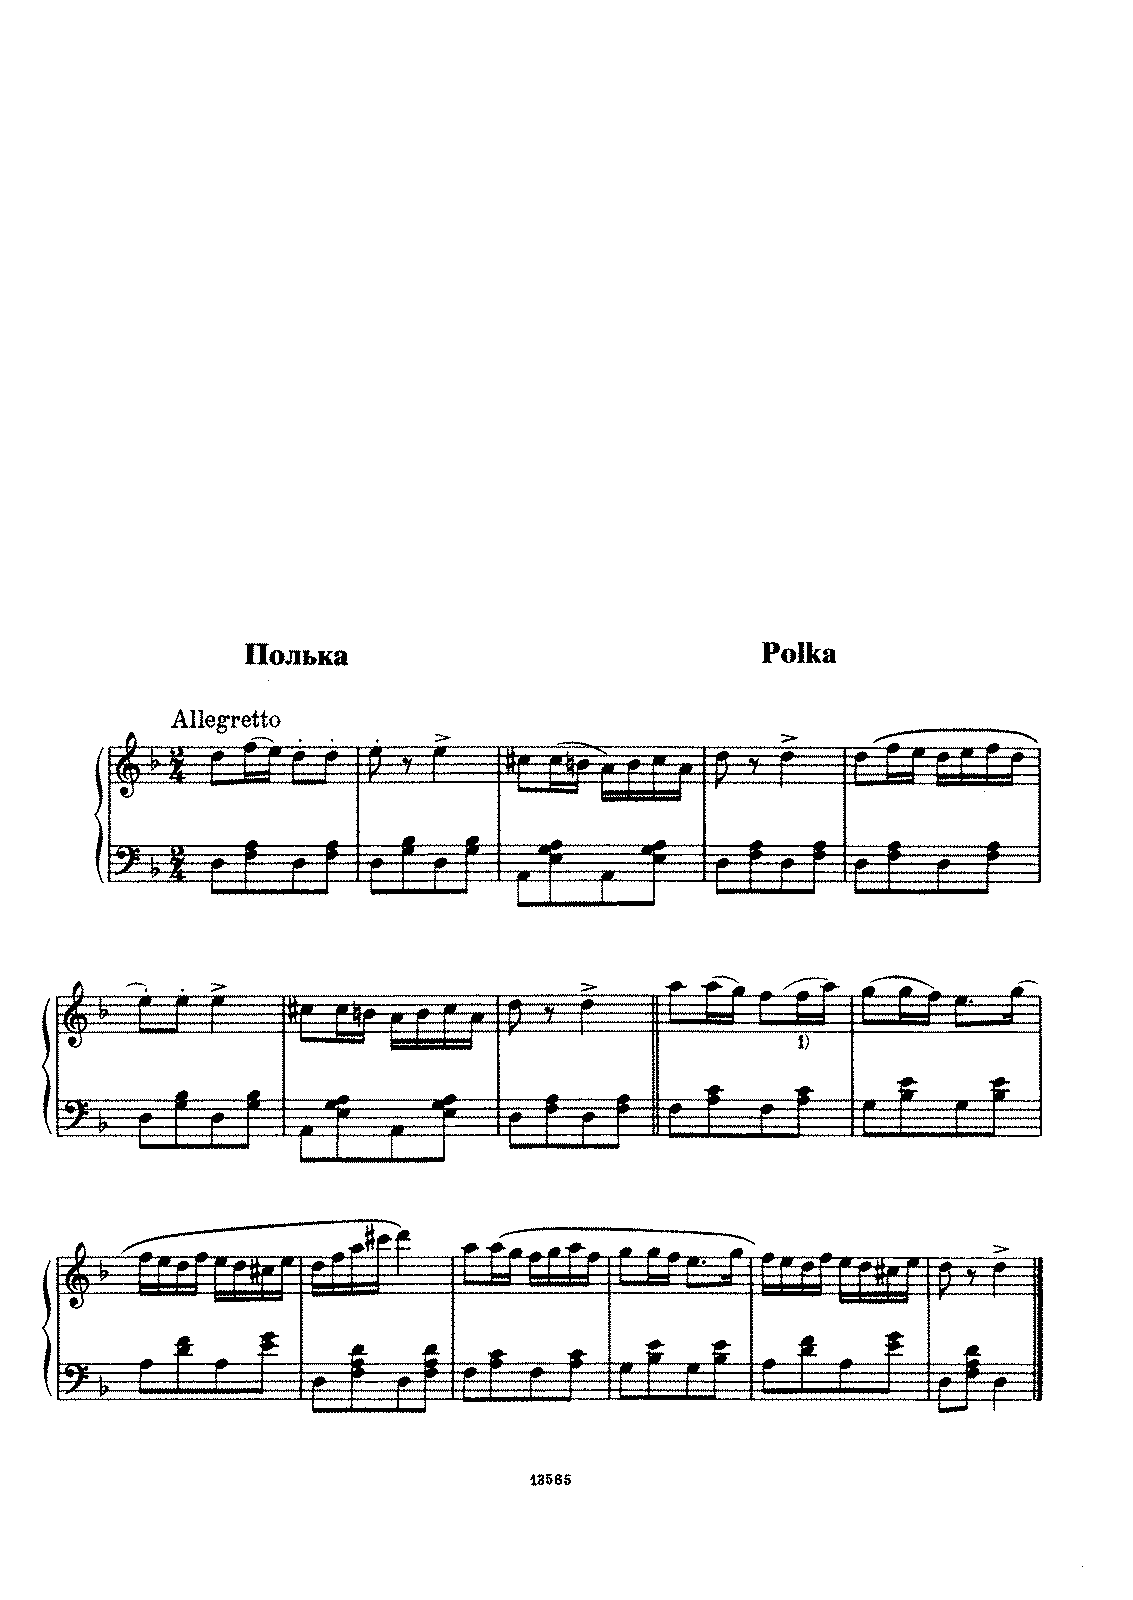 Glinka - Polka in D minor.pdf